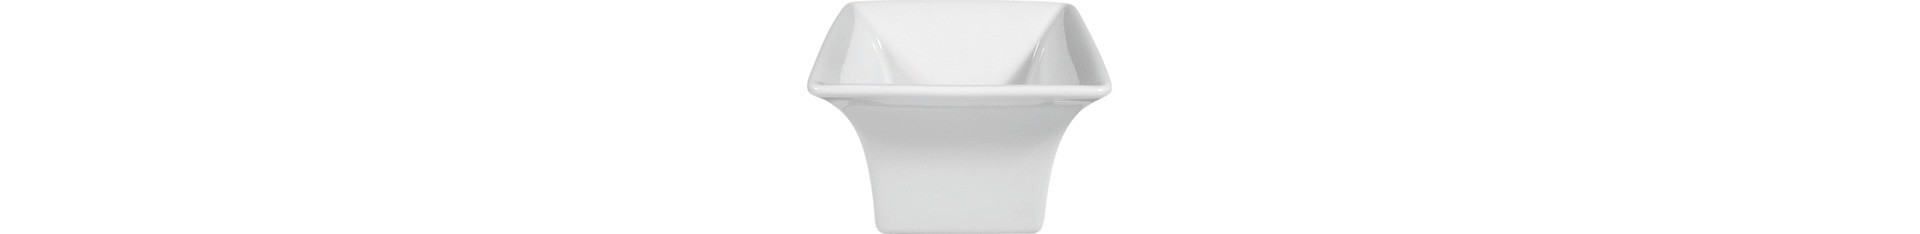 Buffet Gourmet, Bowl 100 x 100 mm / 0,23 l